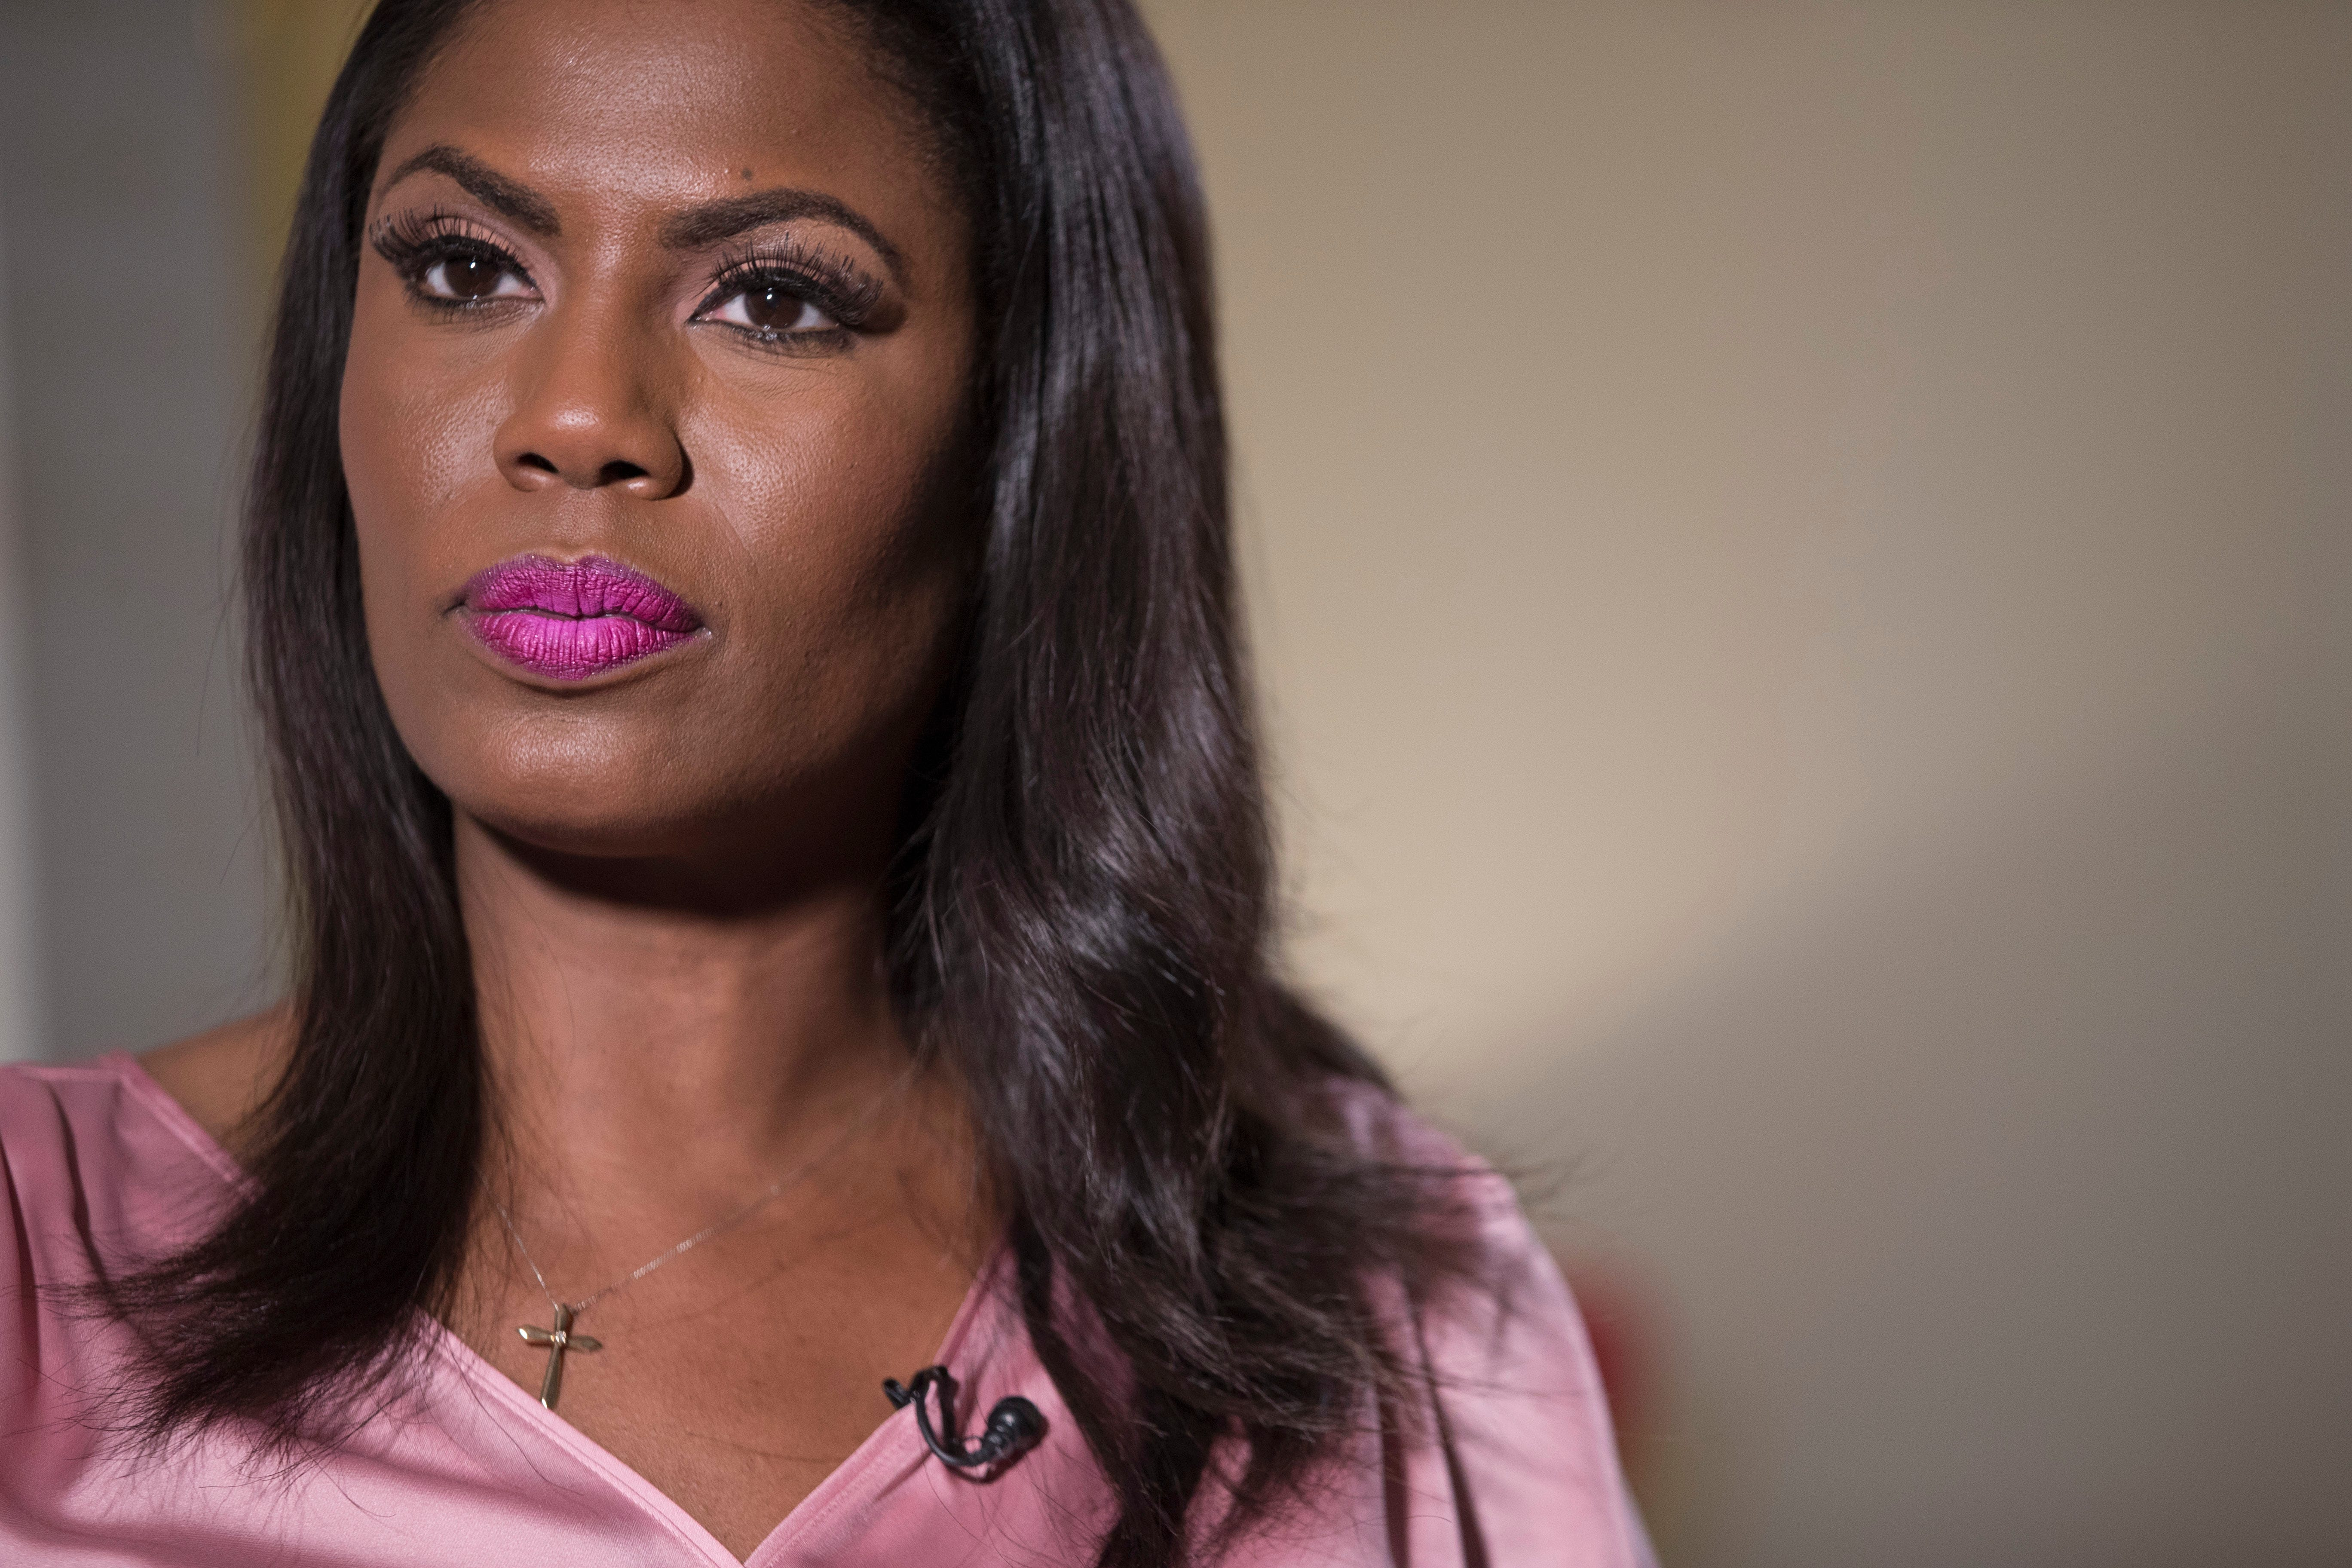 Justice Department sues former Trump staffer Omarosa Manigault Newman, seeks $50,000 penalty